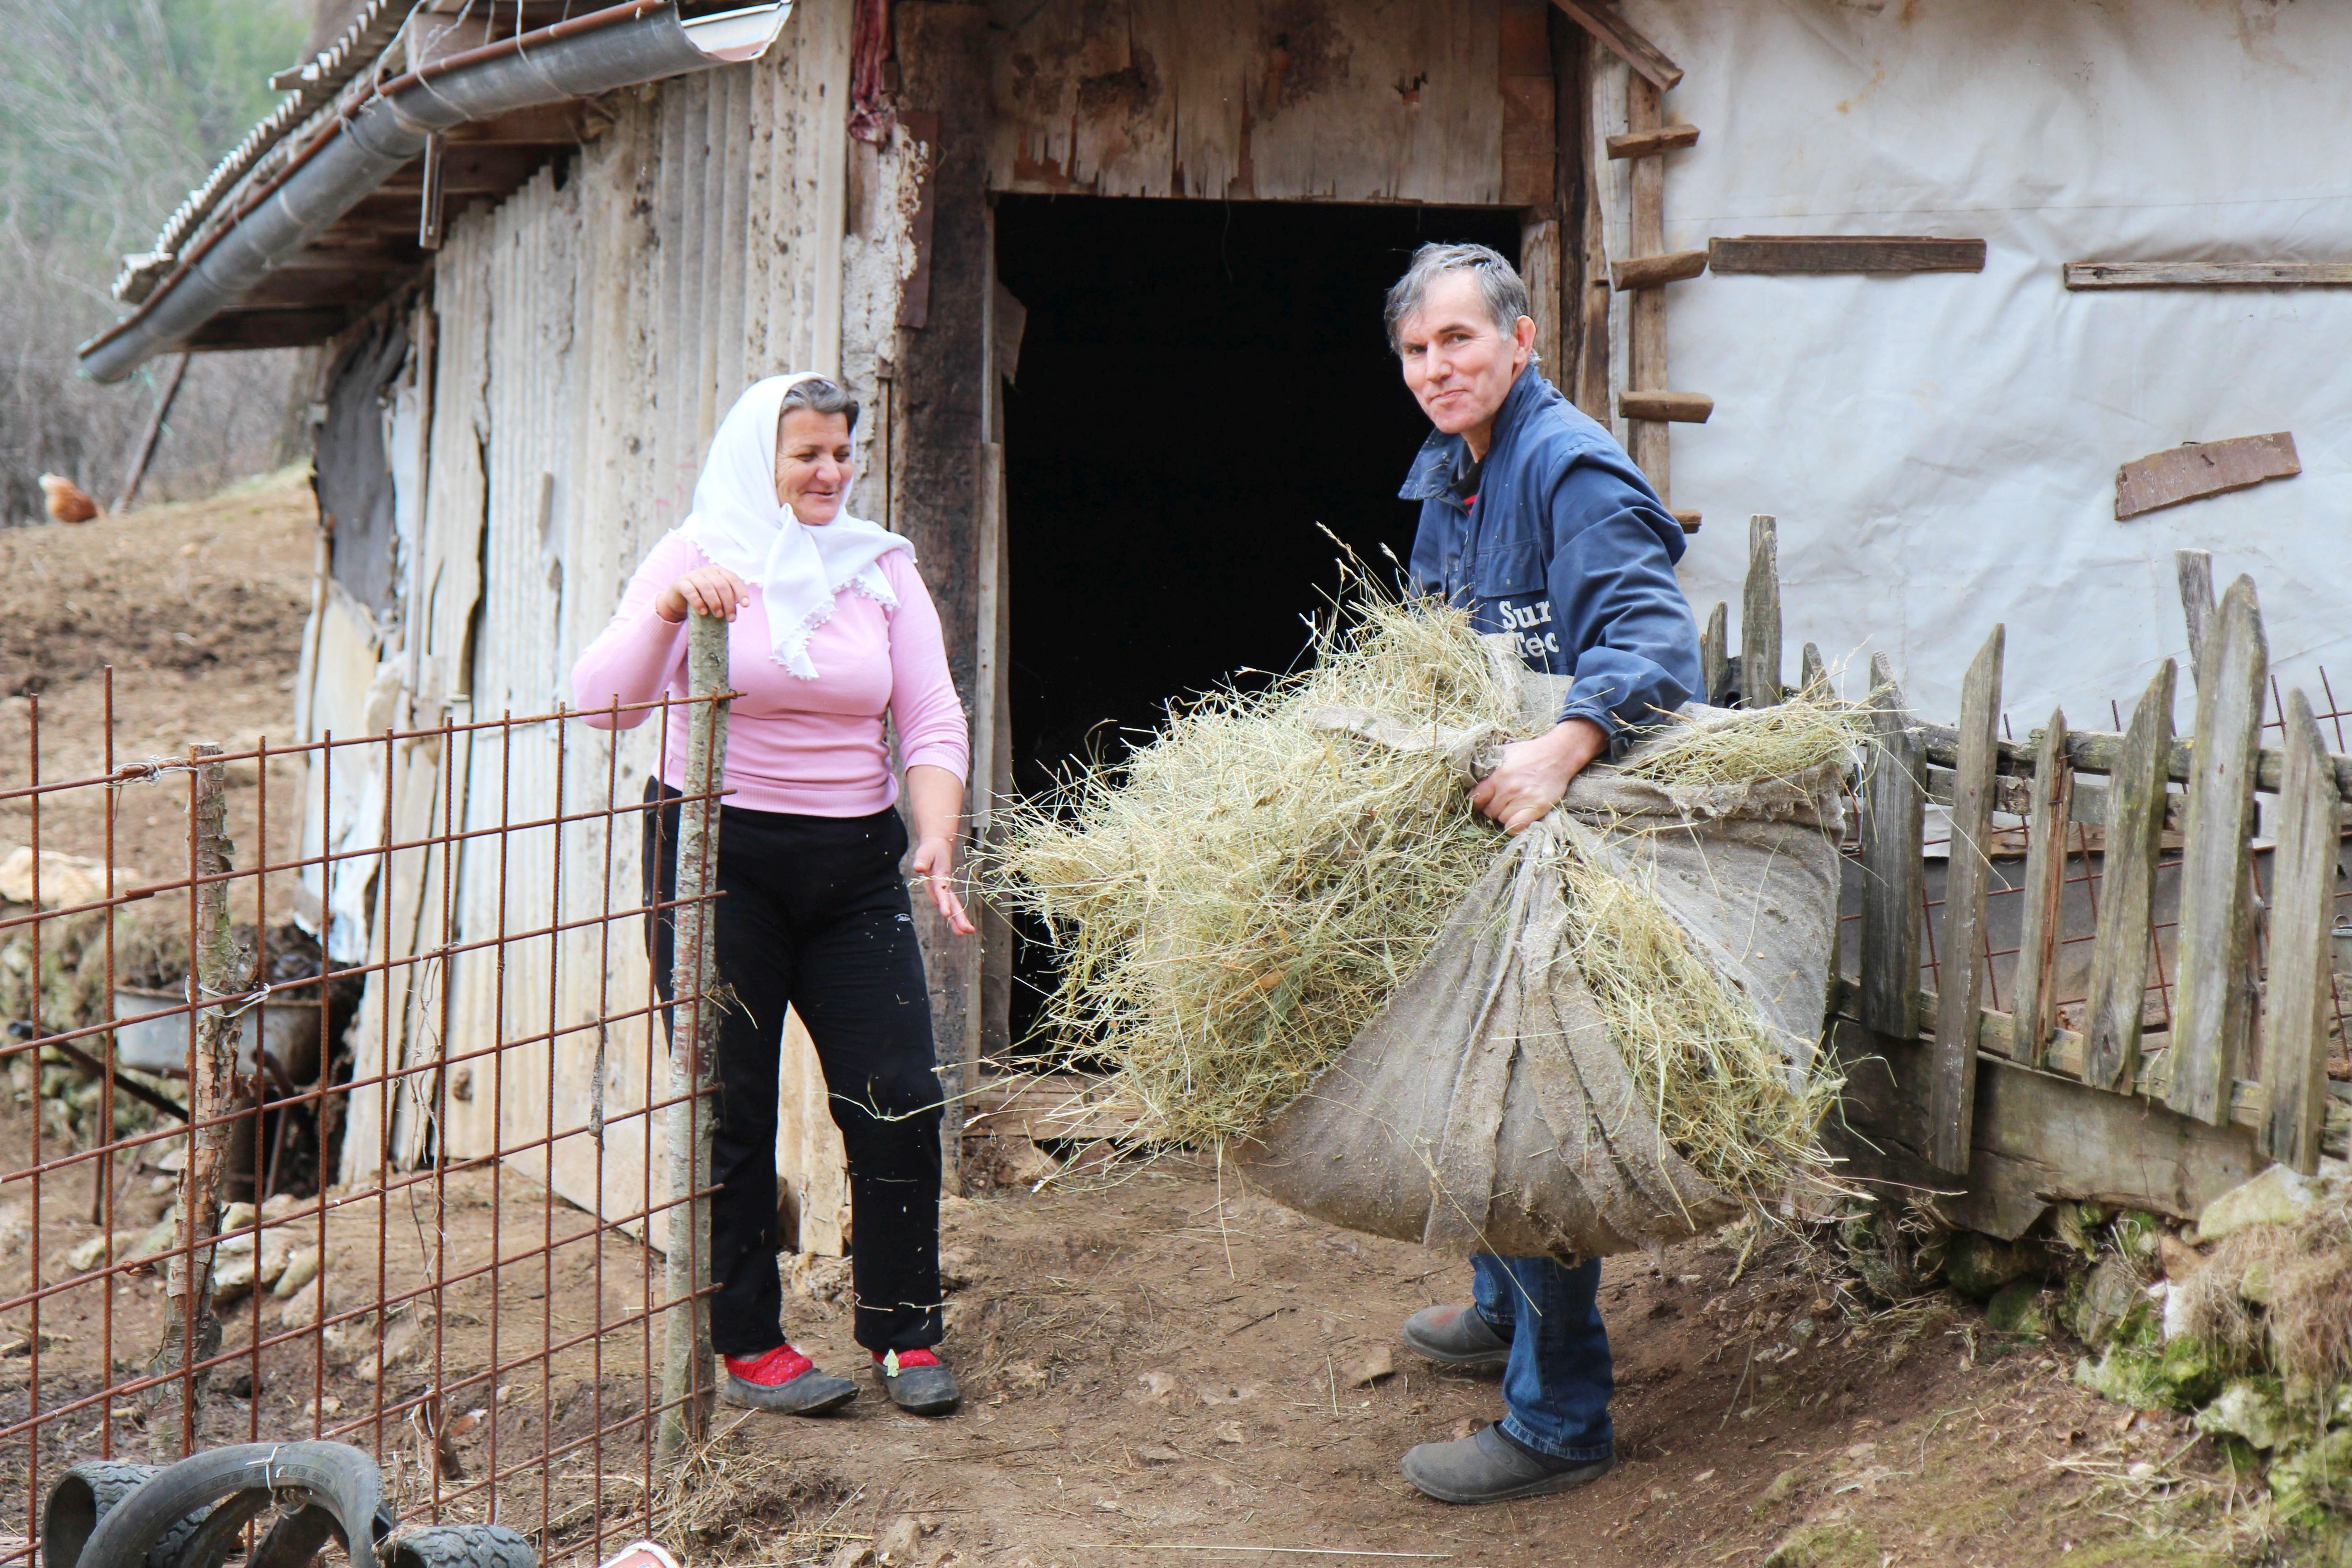 There is a certain routine to mornings in village Živašnica. Animals need to be fed and watered and Azemina and Vahid in the picture above are about to feed cows.